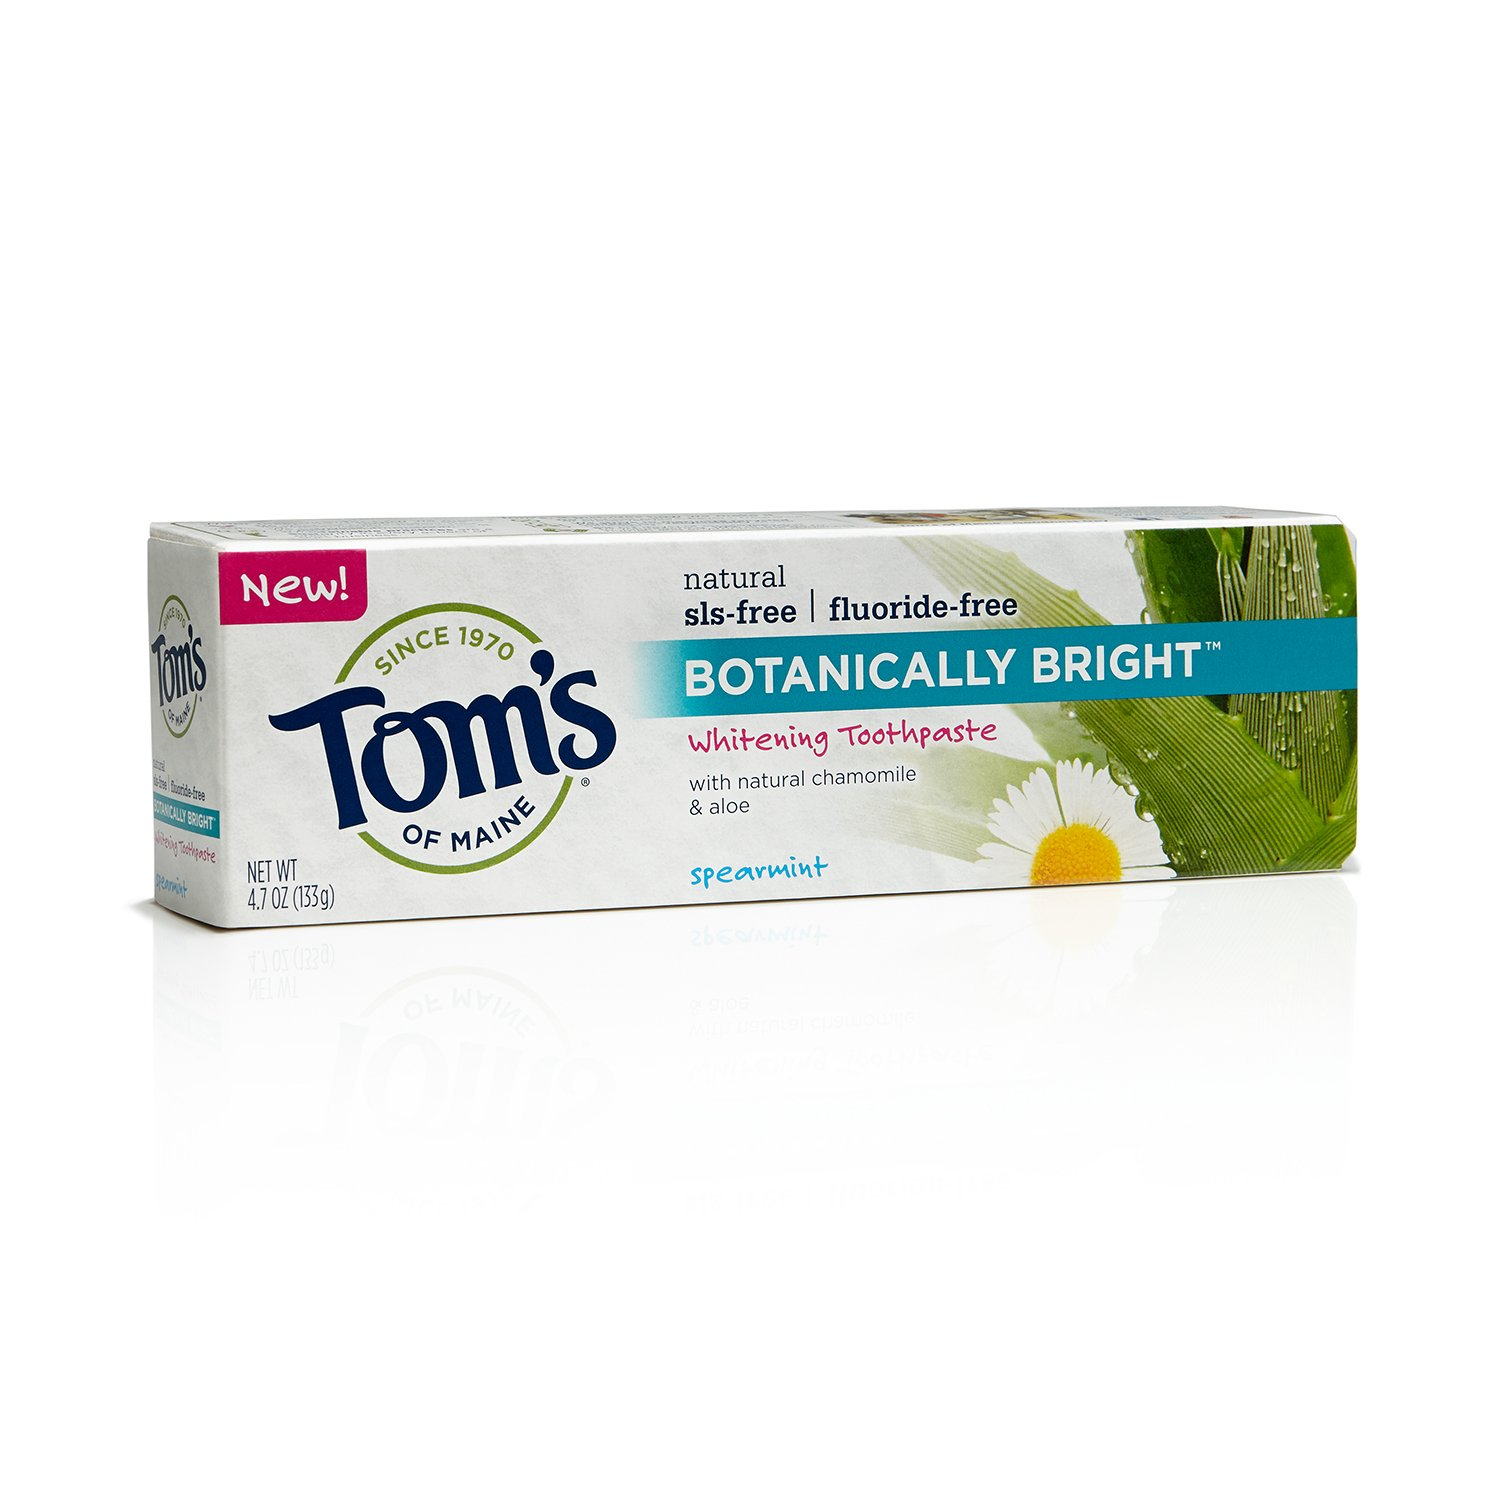 Tom's of Maine 683214 SLS-Free Botanically Bright Toothpaste, Spearmint, 4.7 Ounce, 24 Count